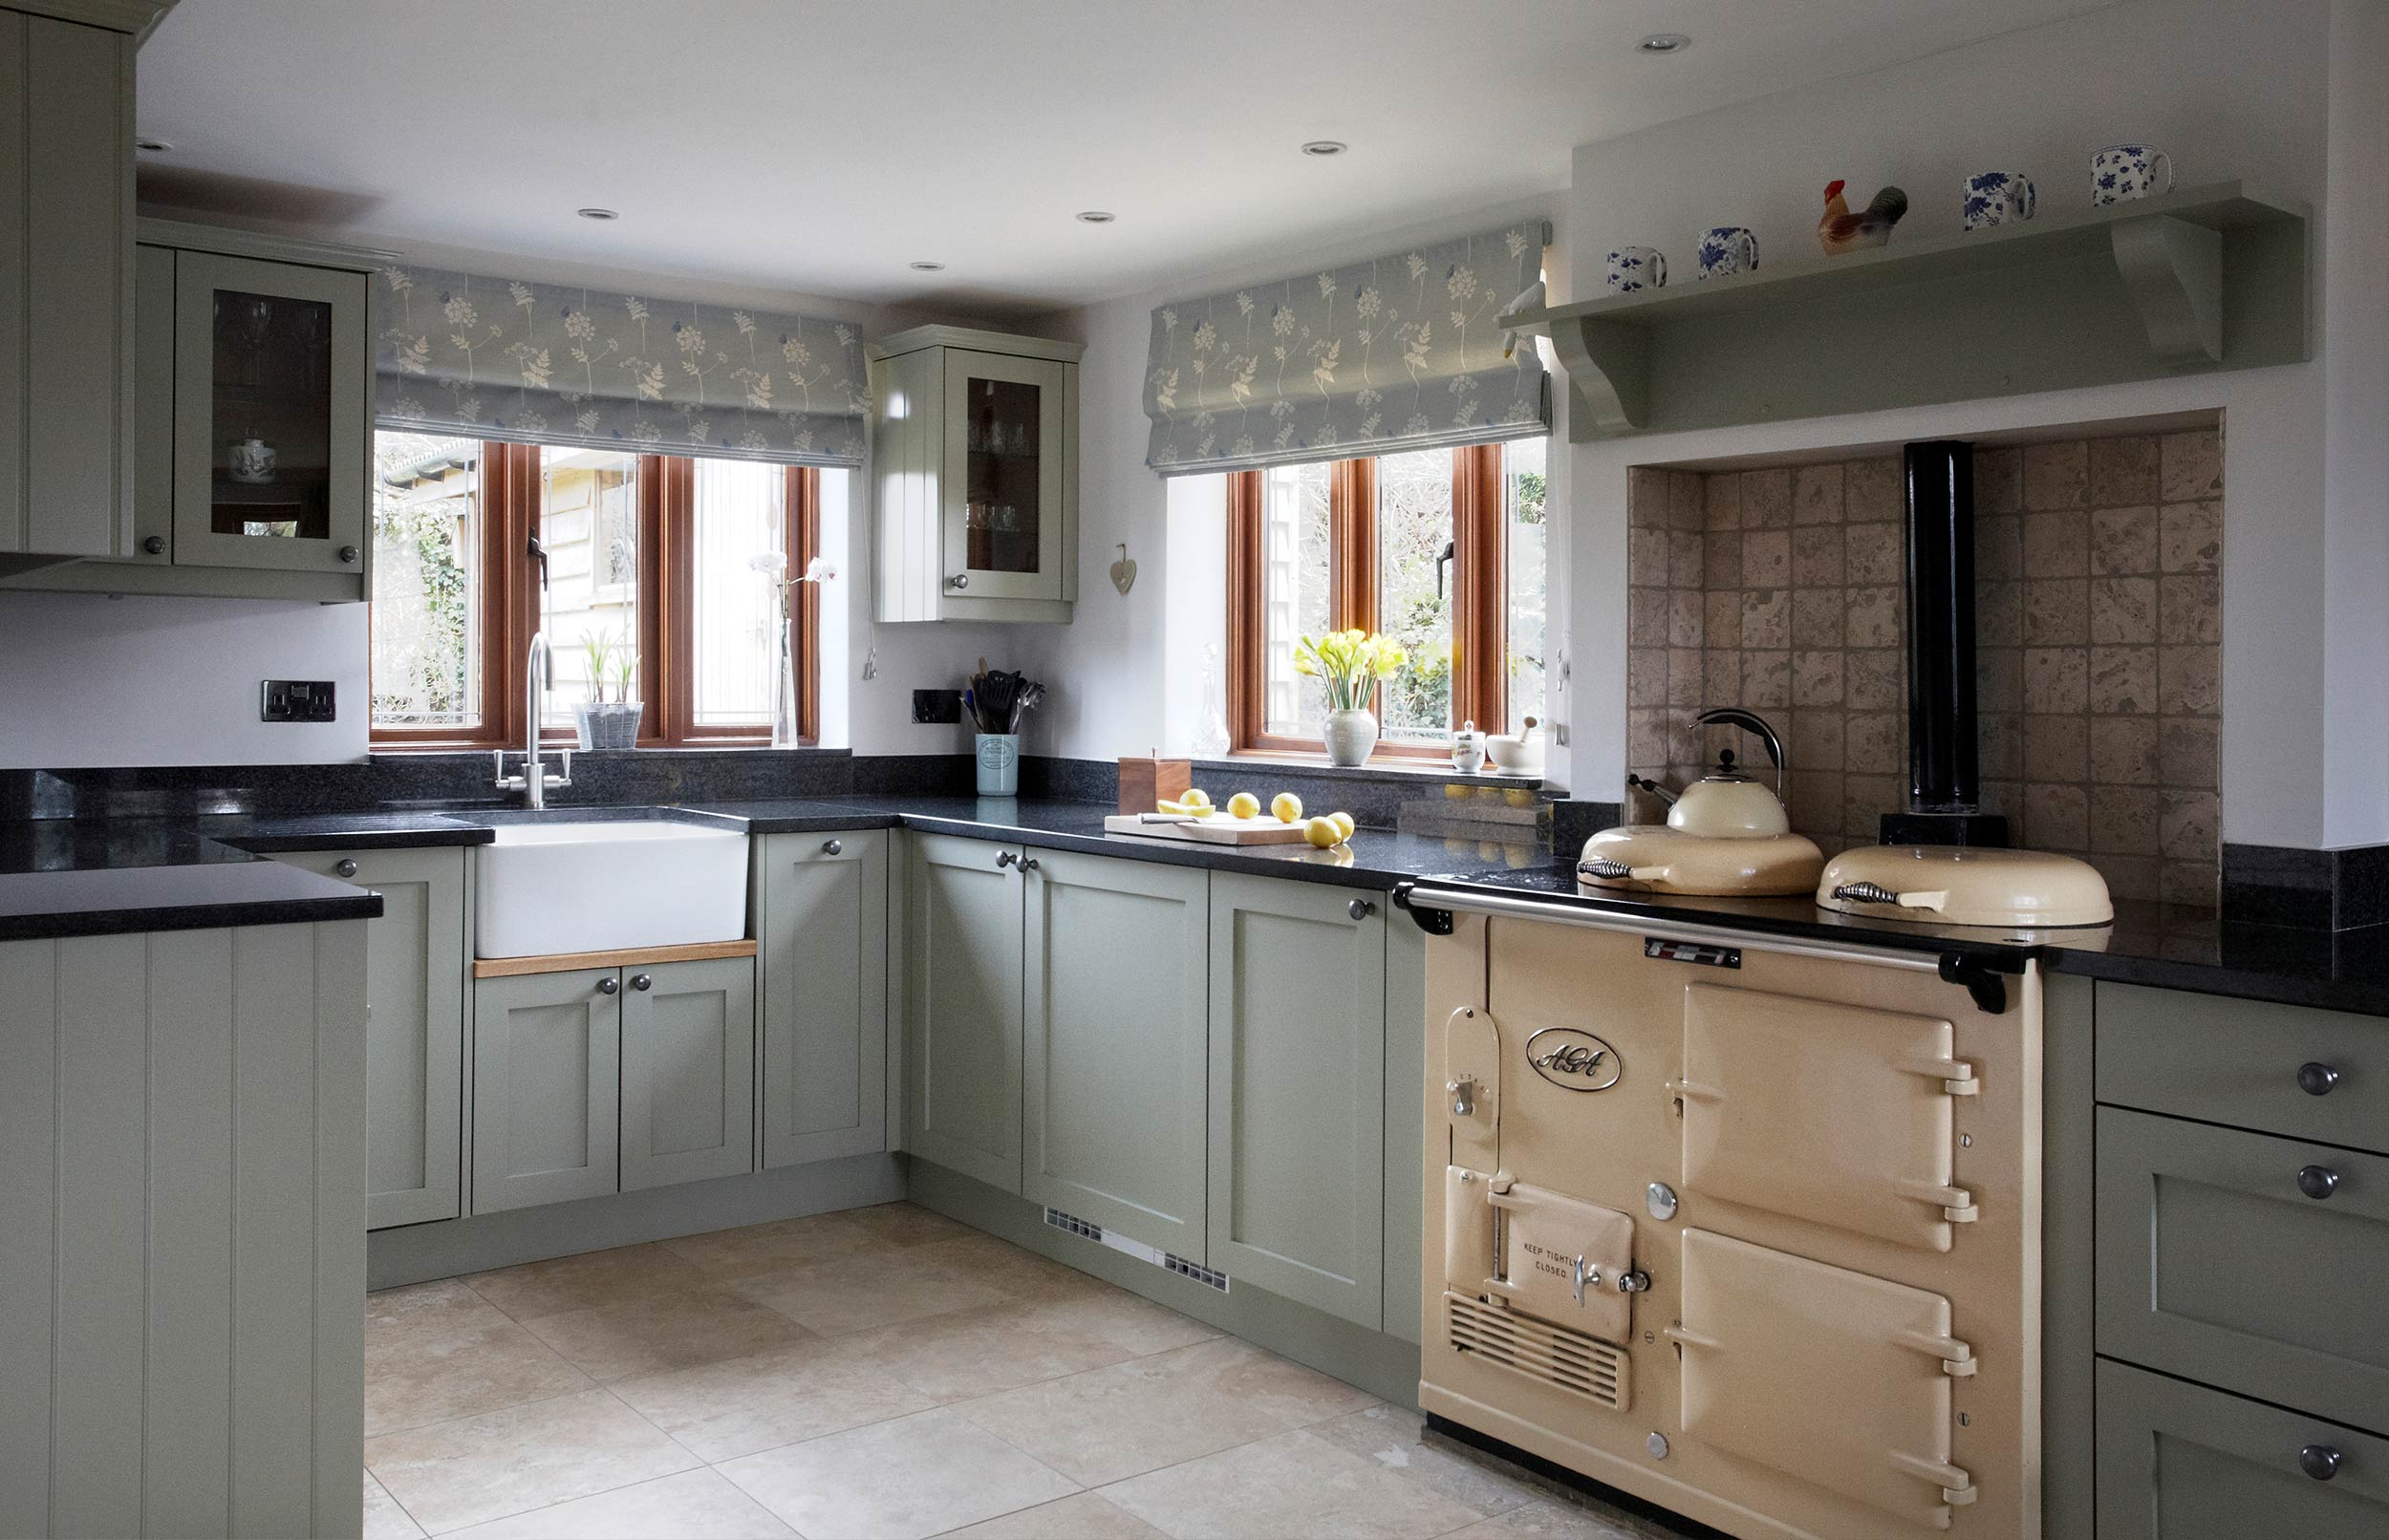 Cosy country bespoke kitchen design bath kitchen company for Bespoke kitchen ideas